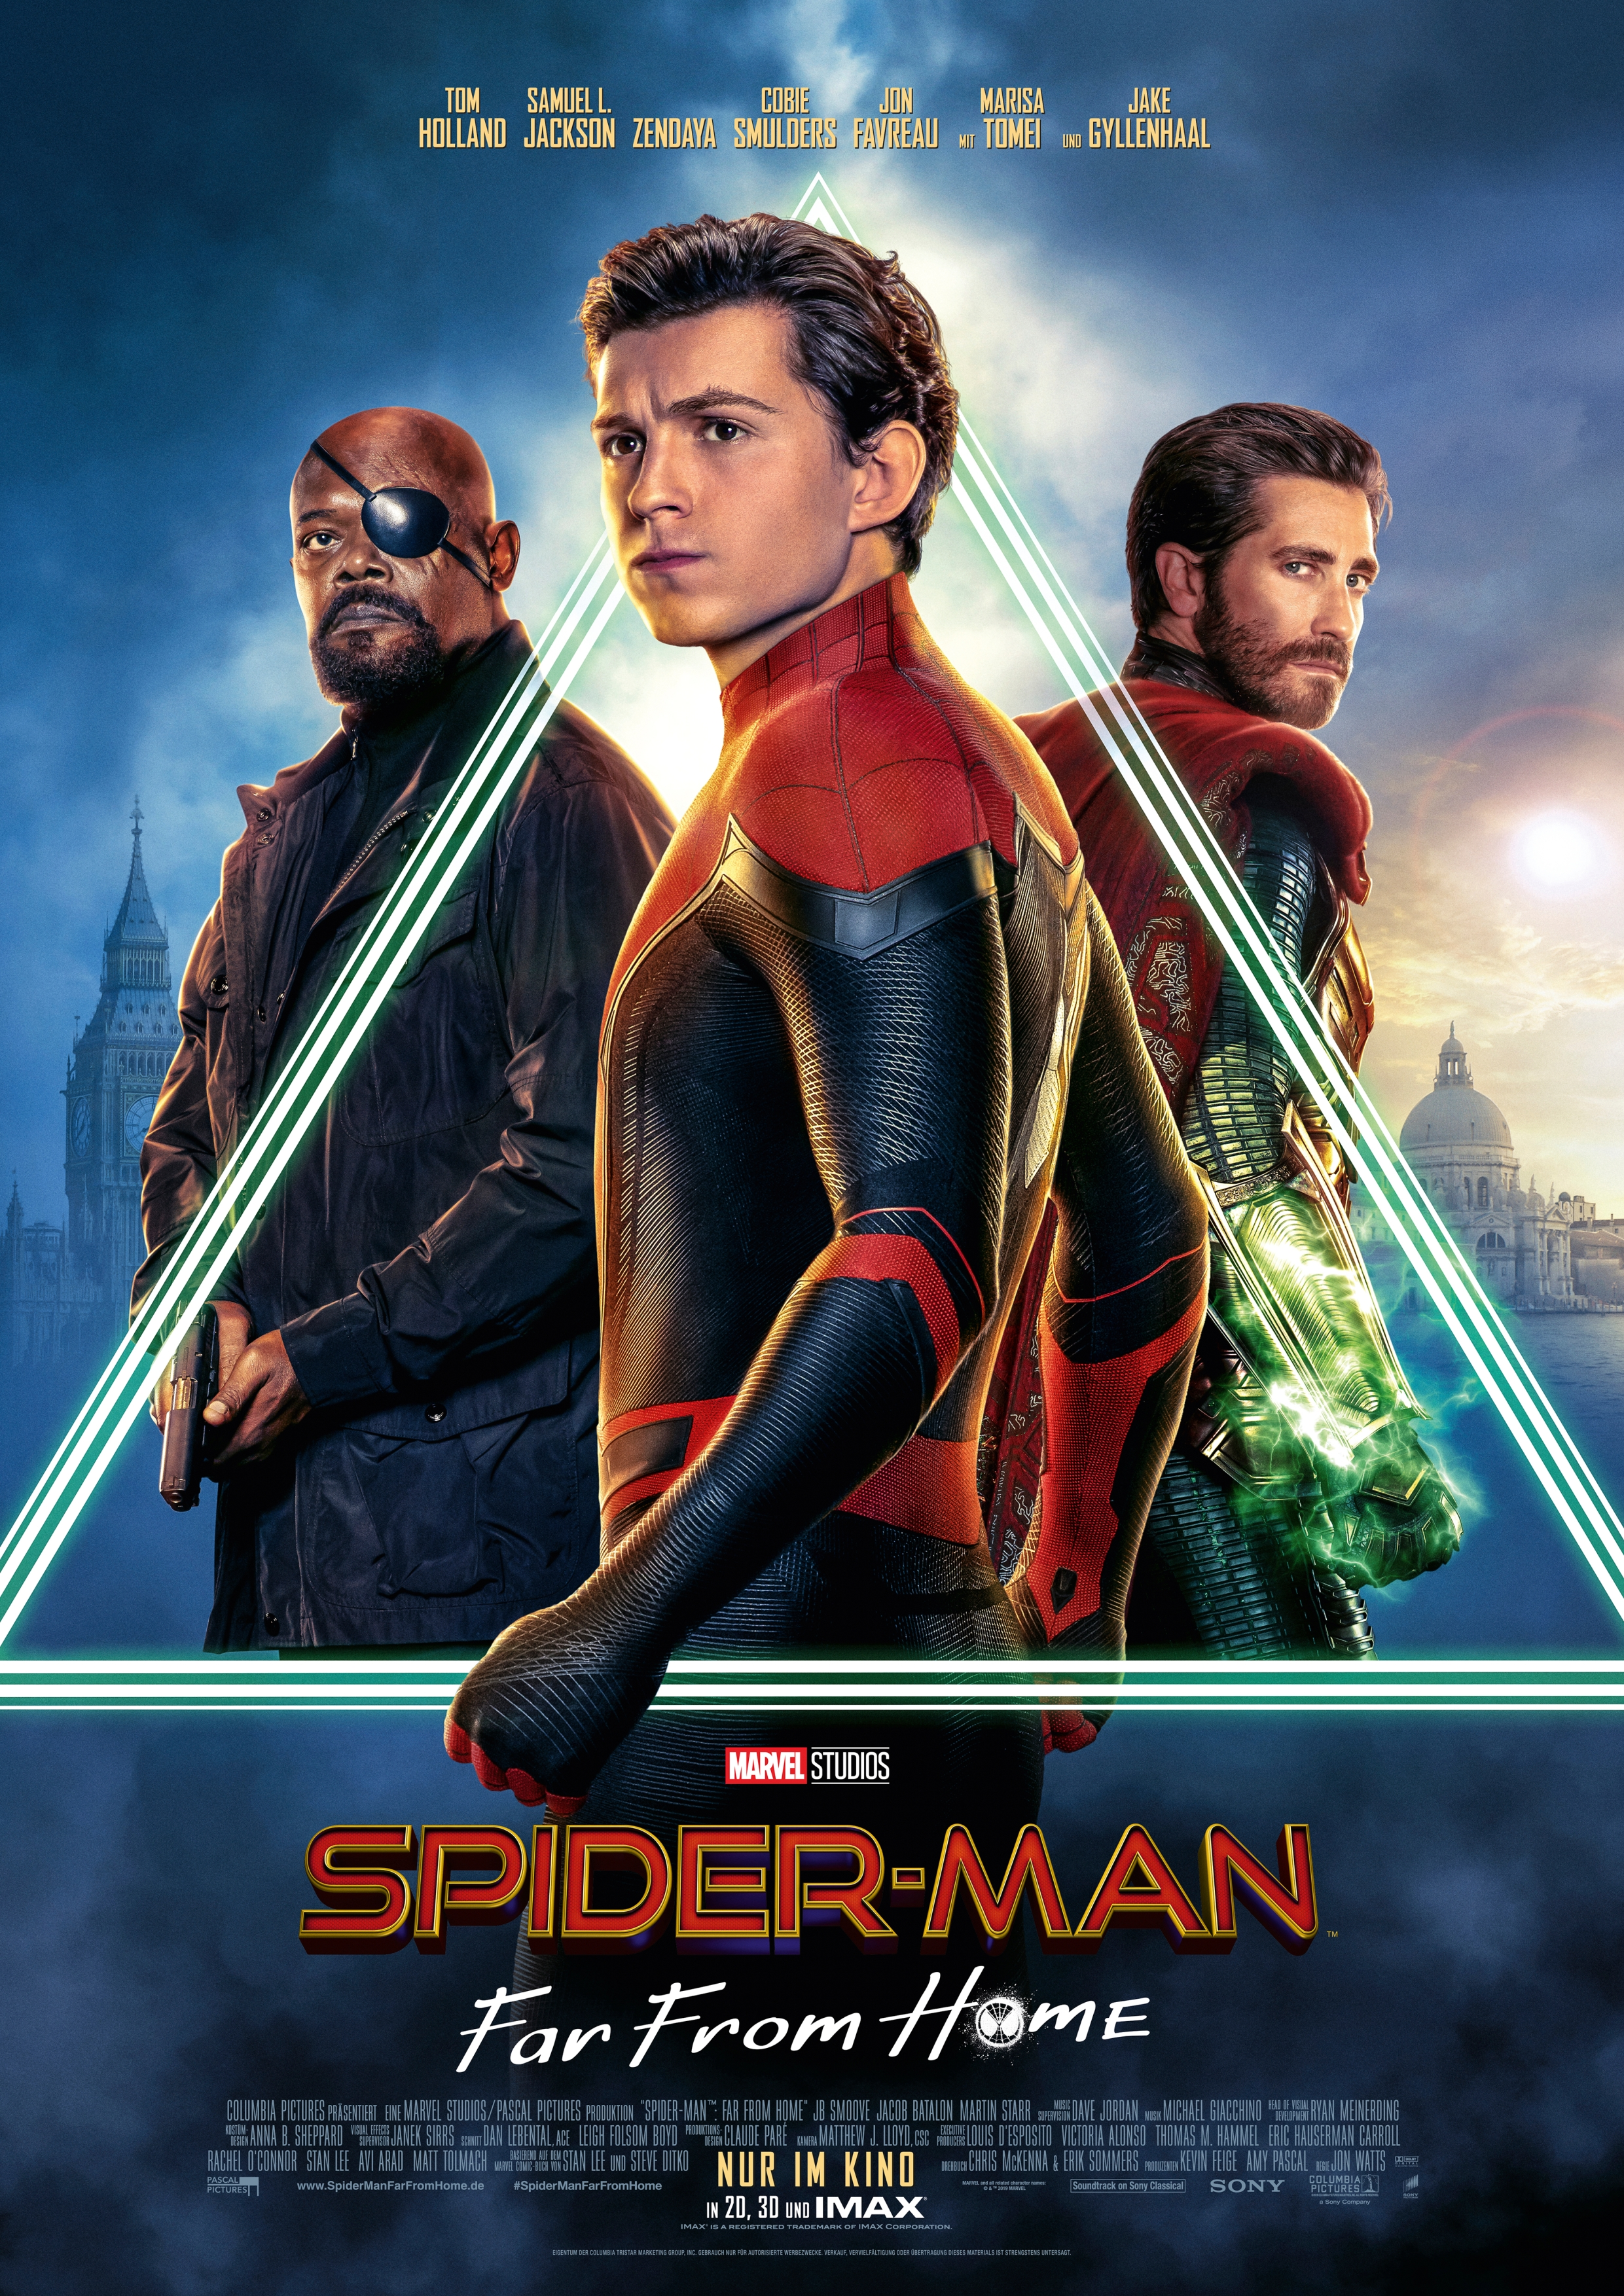 Spider Man: Far From Home Film (2019) · Trailer · Kritik